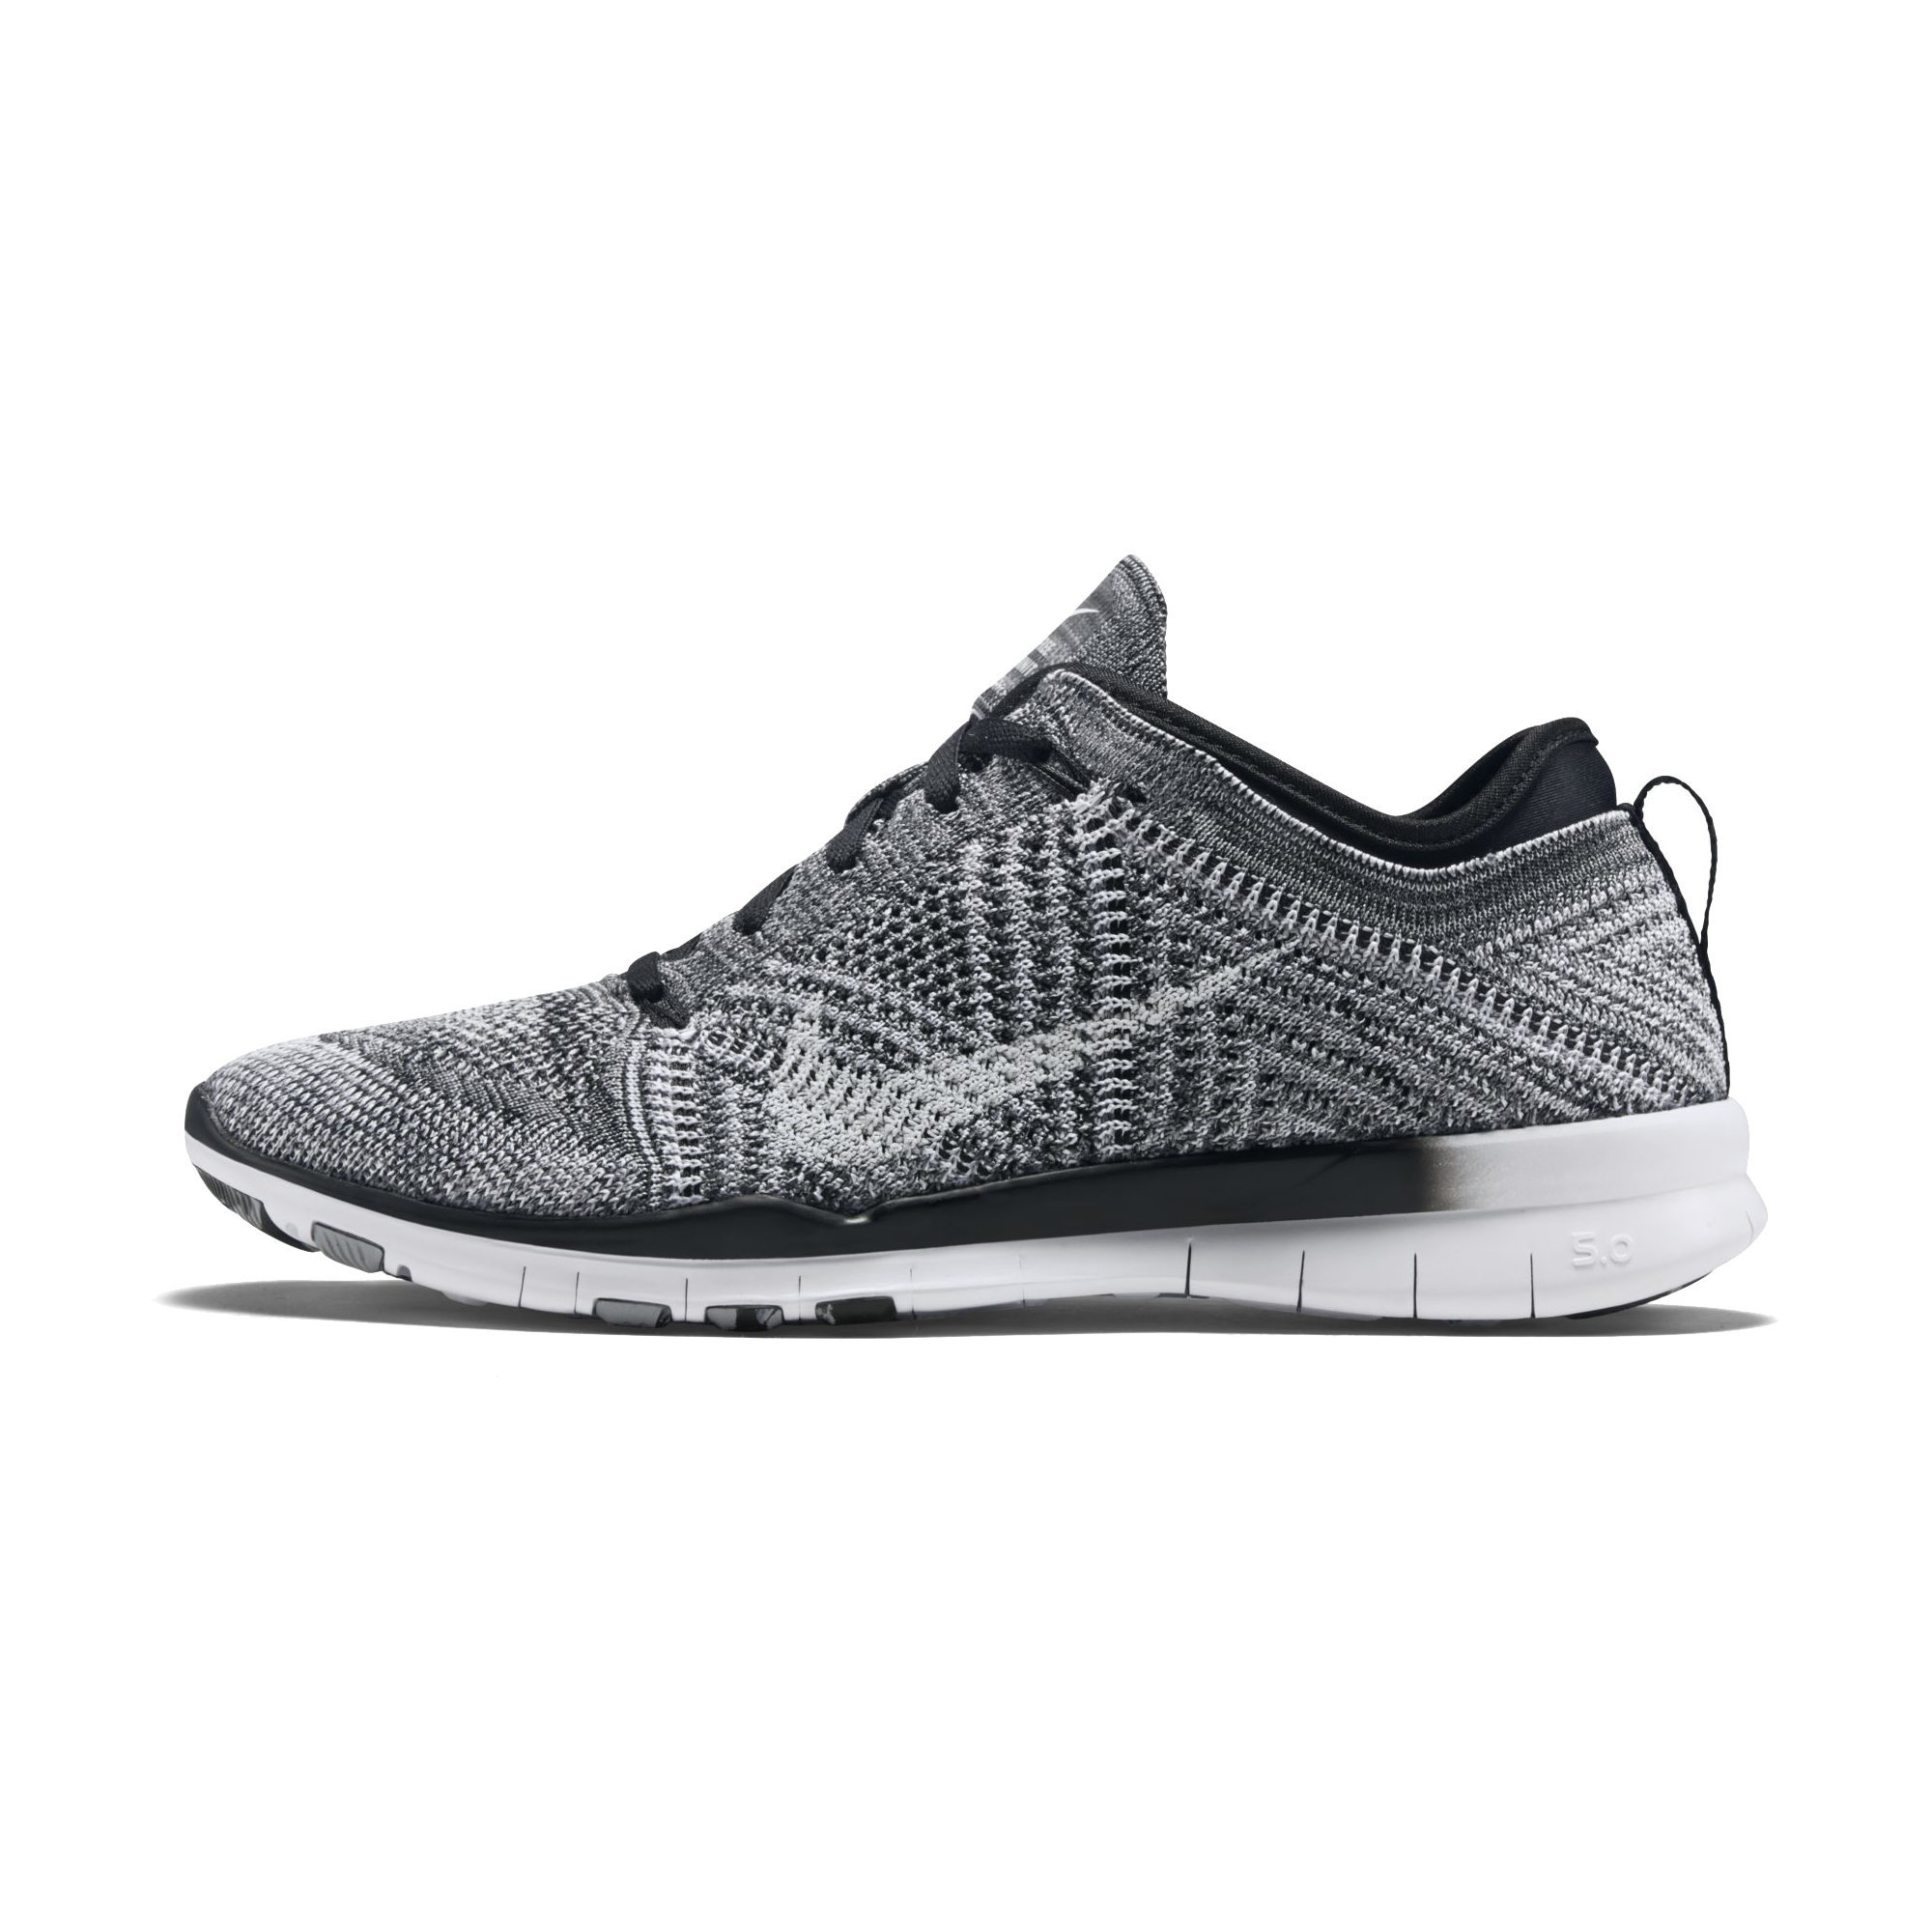 uk availability 4b8d7 c37a7 ... ireland get quotations nike shoes nike free tr 5 flyknit woman training  shoes 718785 001 601